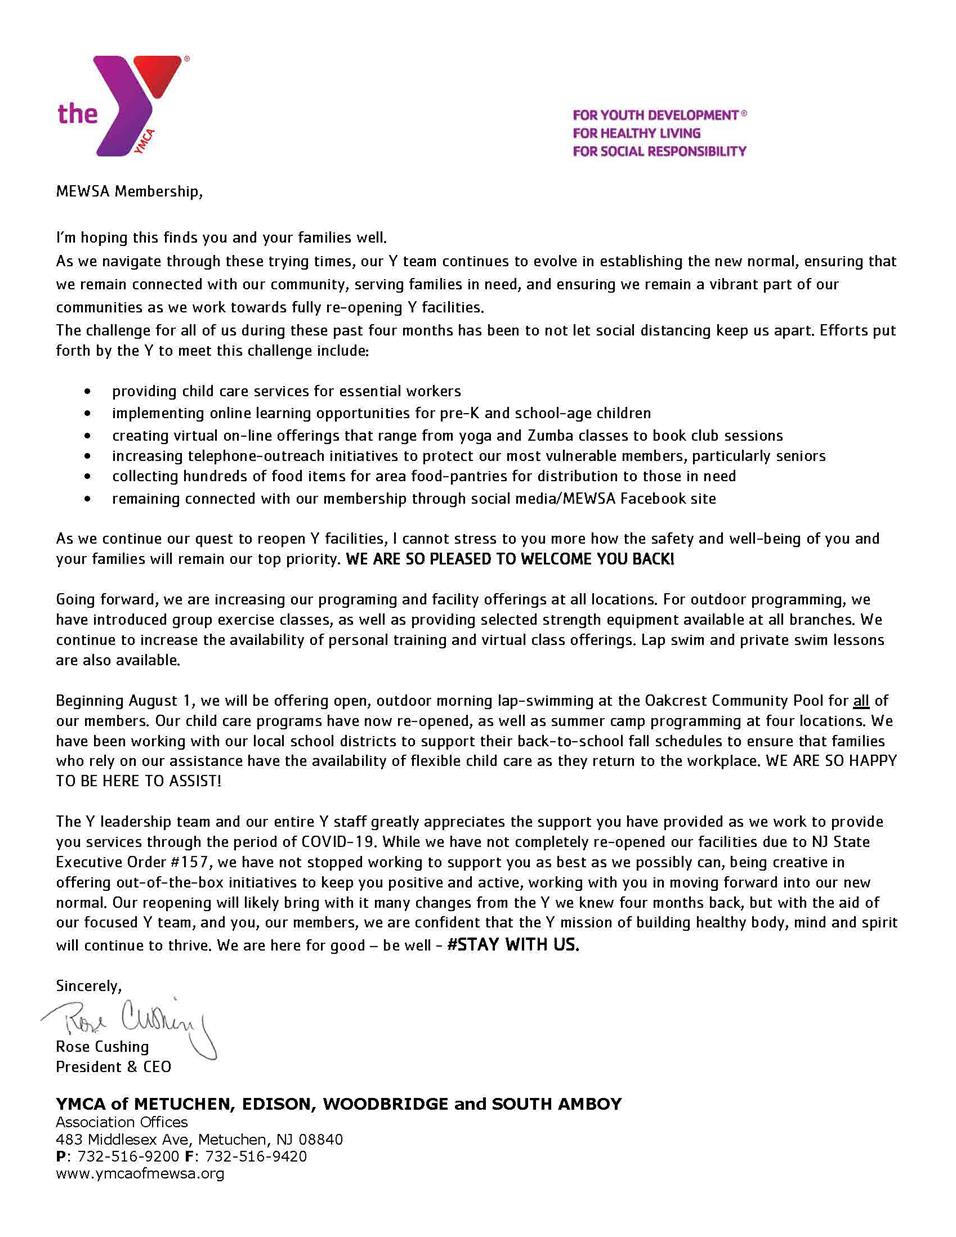 A Letter From Our President Ceo